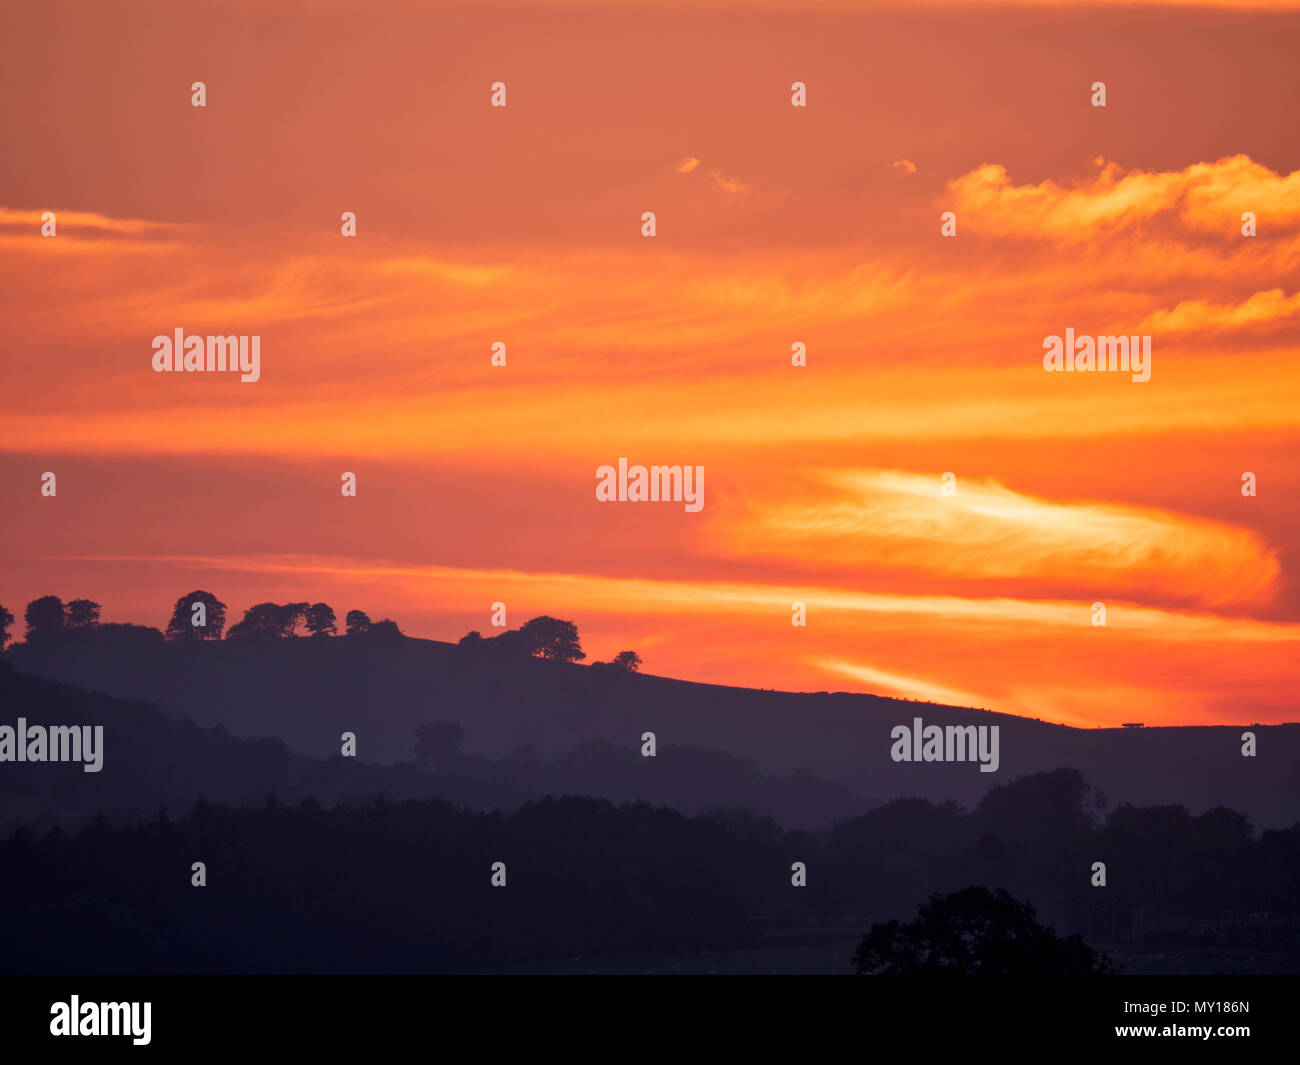 Ashbourne, Derbyshire. 5th Jun, 2018. UK Weather: spectacular sunset over the ancient woods Hazleton Clump Cairn near Thorpe taken from Ashbourne Derbyshire, Peak District National Park Credit: Doug Blane/Alamy Live NewsStock Photo